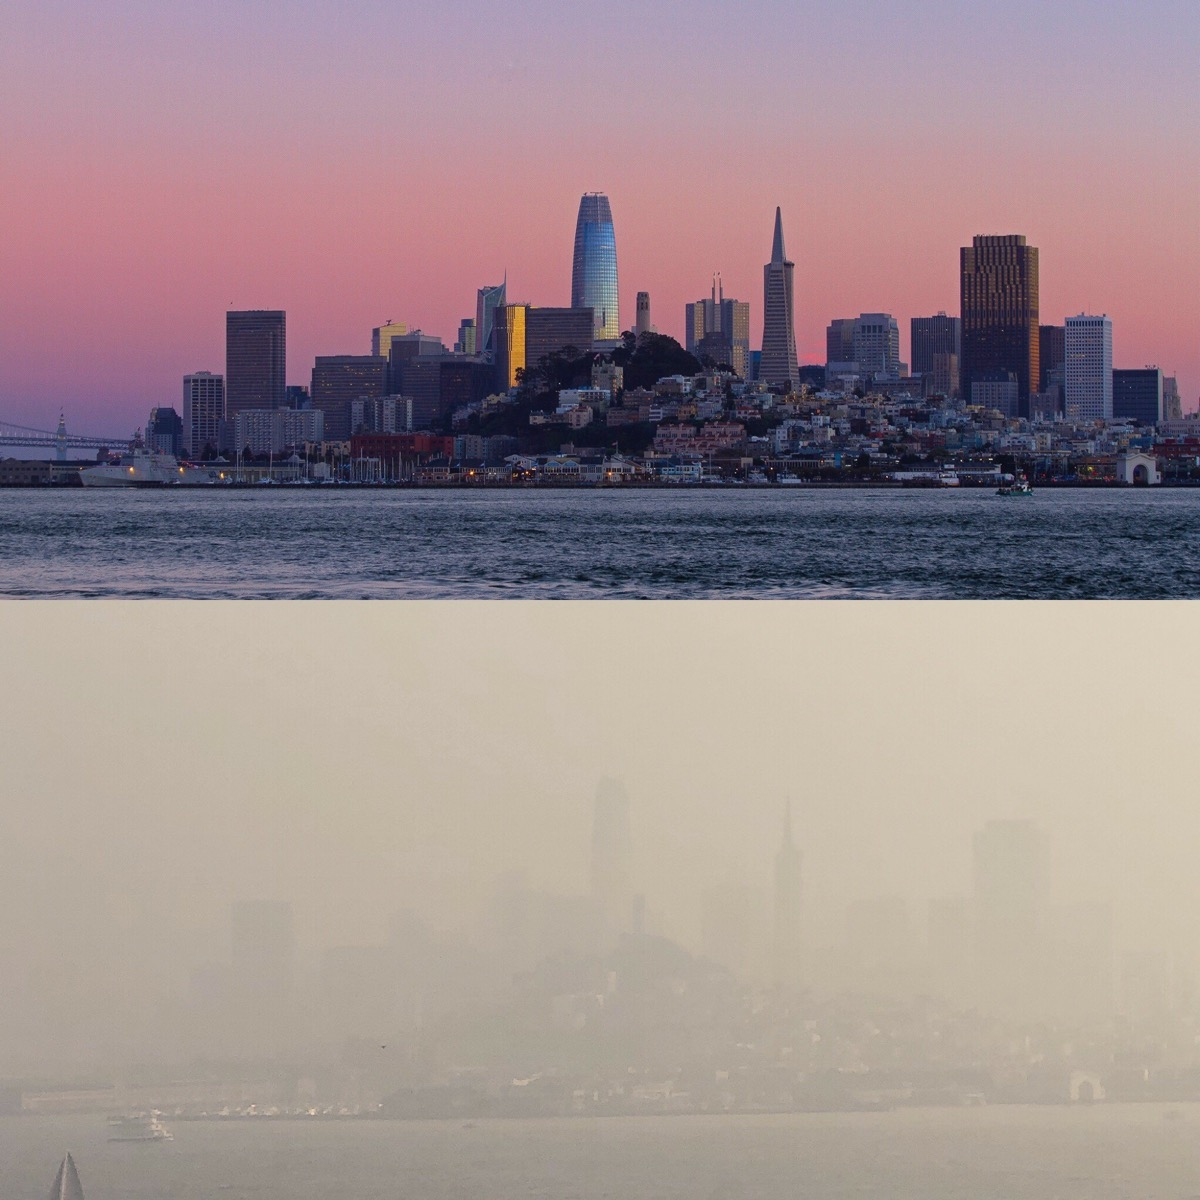 two images, on top, a clear day of downtown san francisco, on bottom, the skyscrapers are barely visible due to smoke